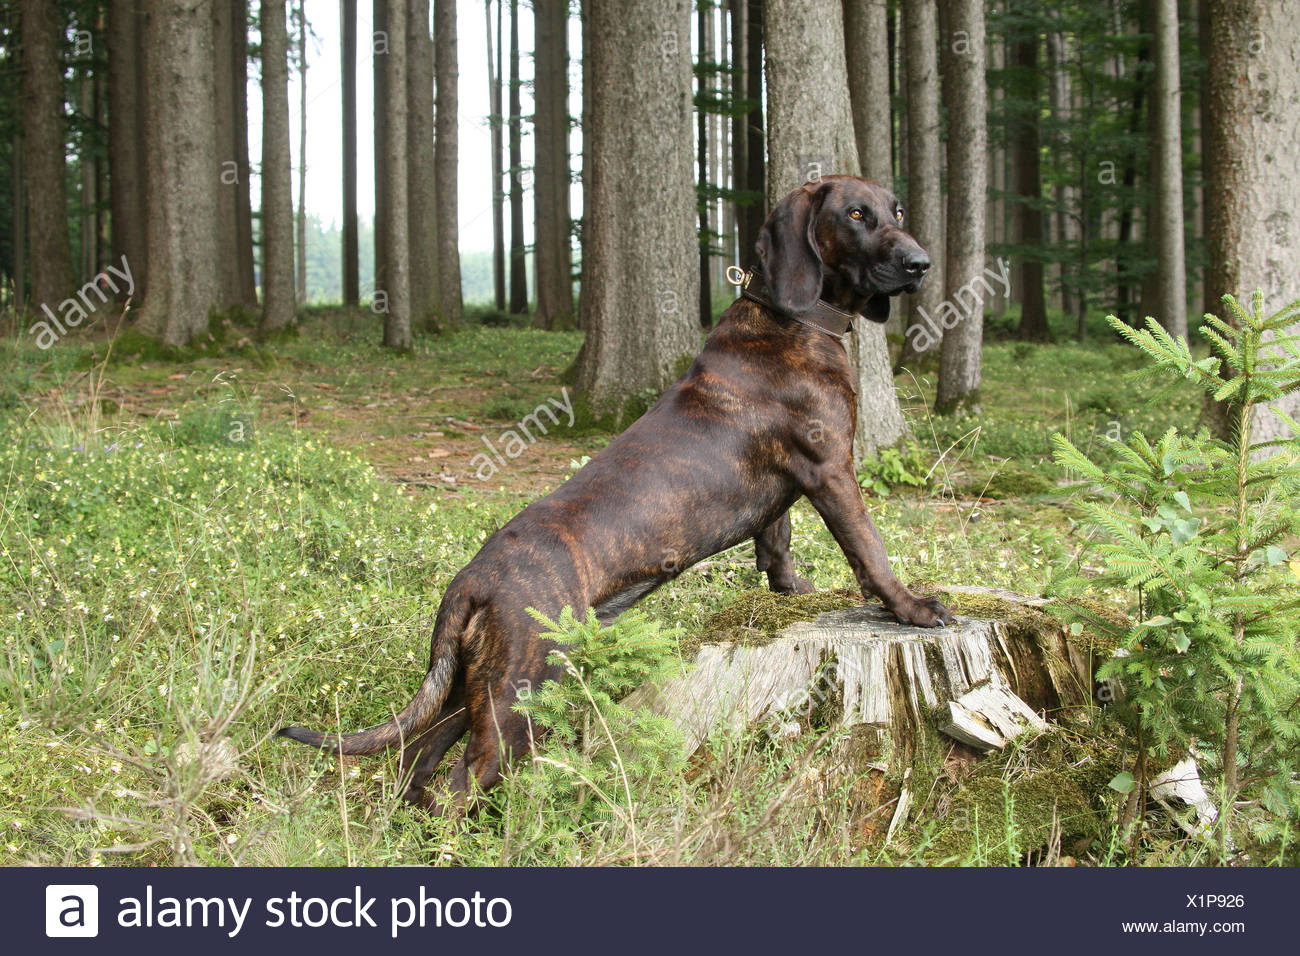 Hanoverian Hound Stock Photos & Hanoverian Hound Stock Images - Alamy